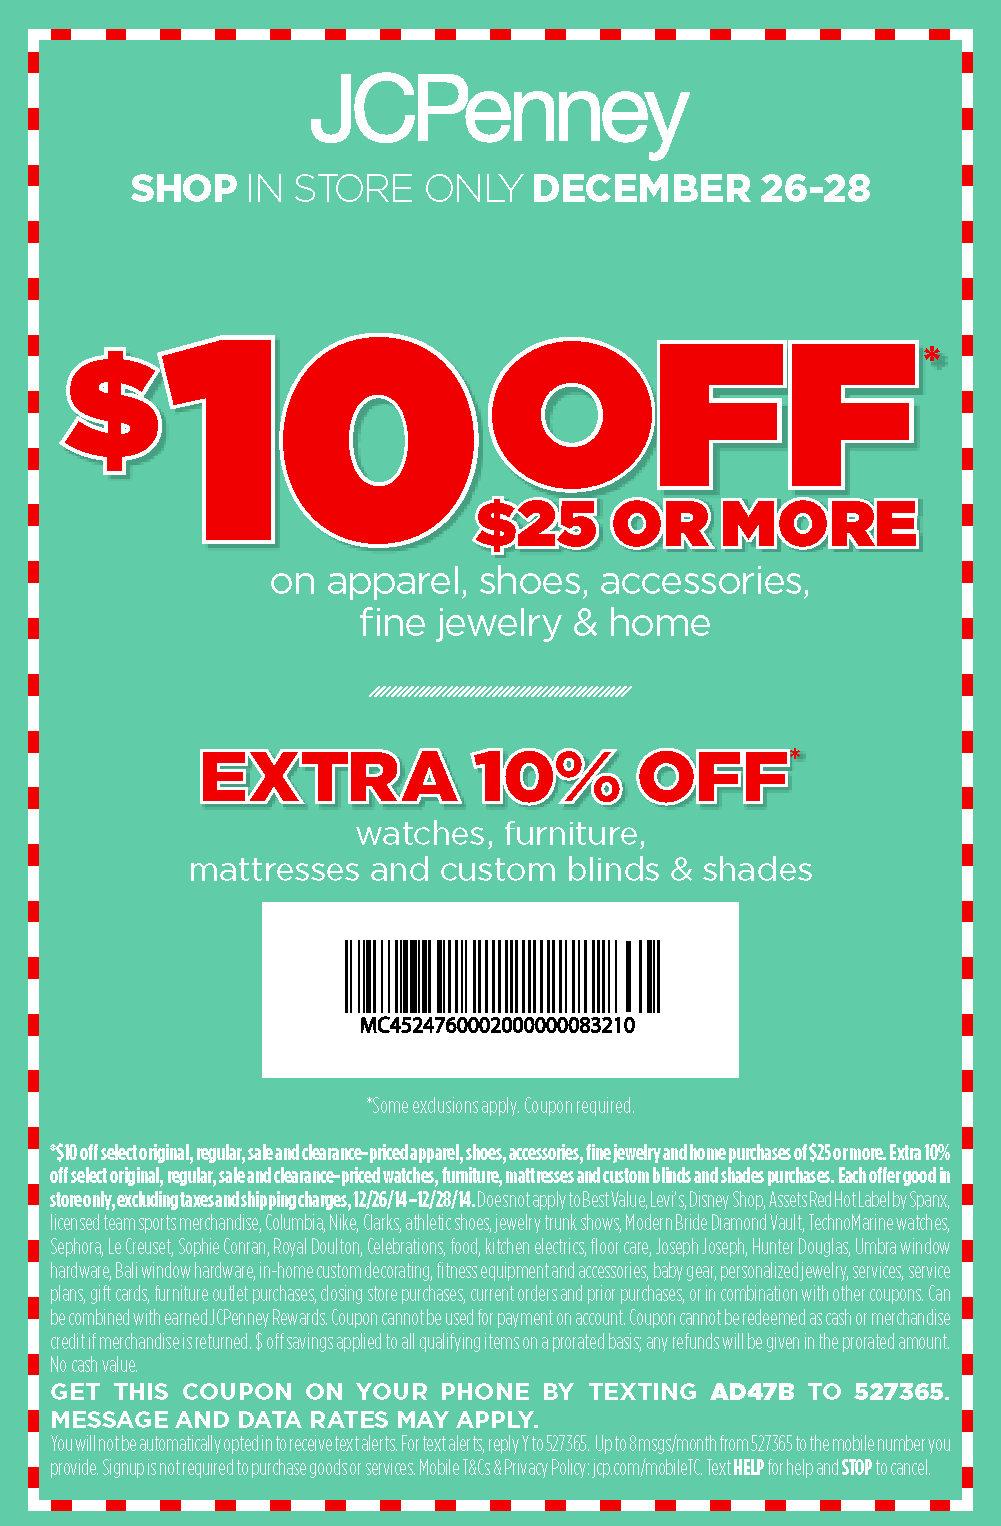 picture relating to Outback Coupons $10 Off Printable named Jcpenney discount coupons $10 off $10 or excess december 2018 : United kingdom